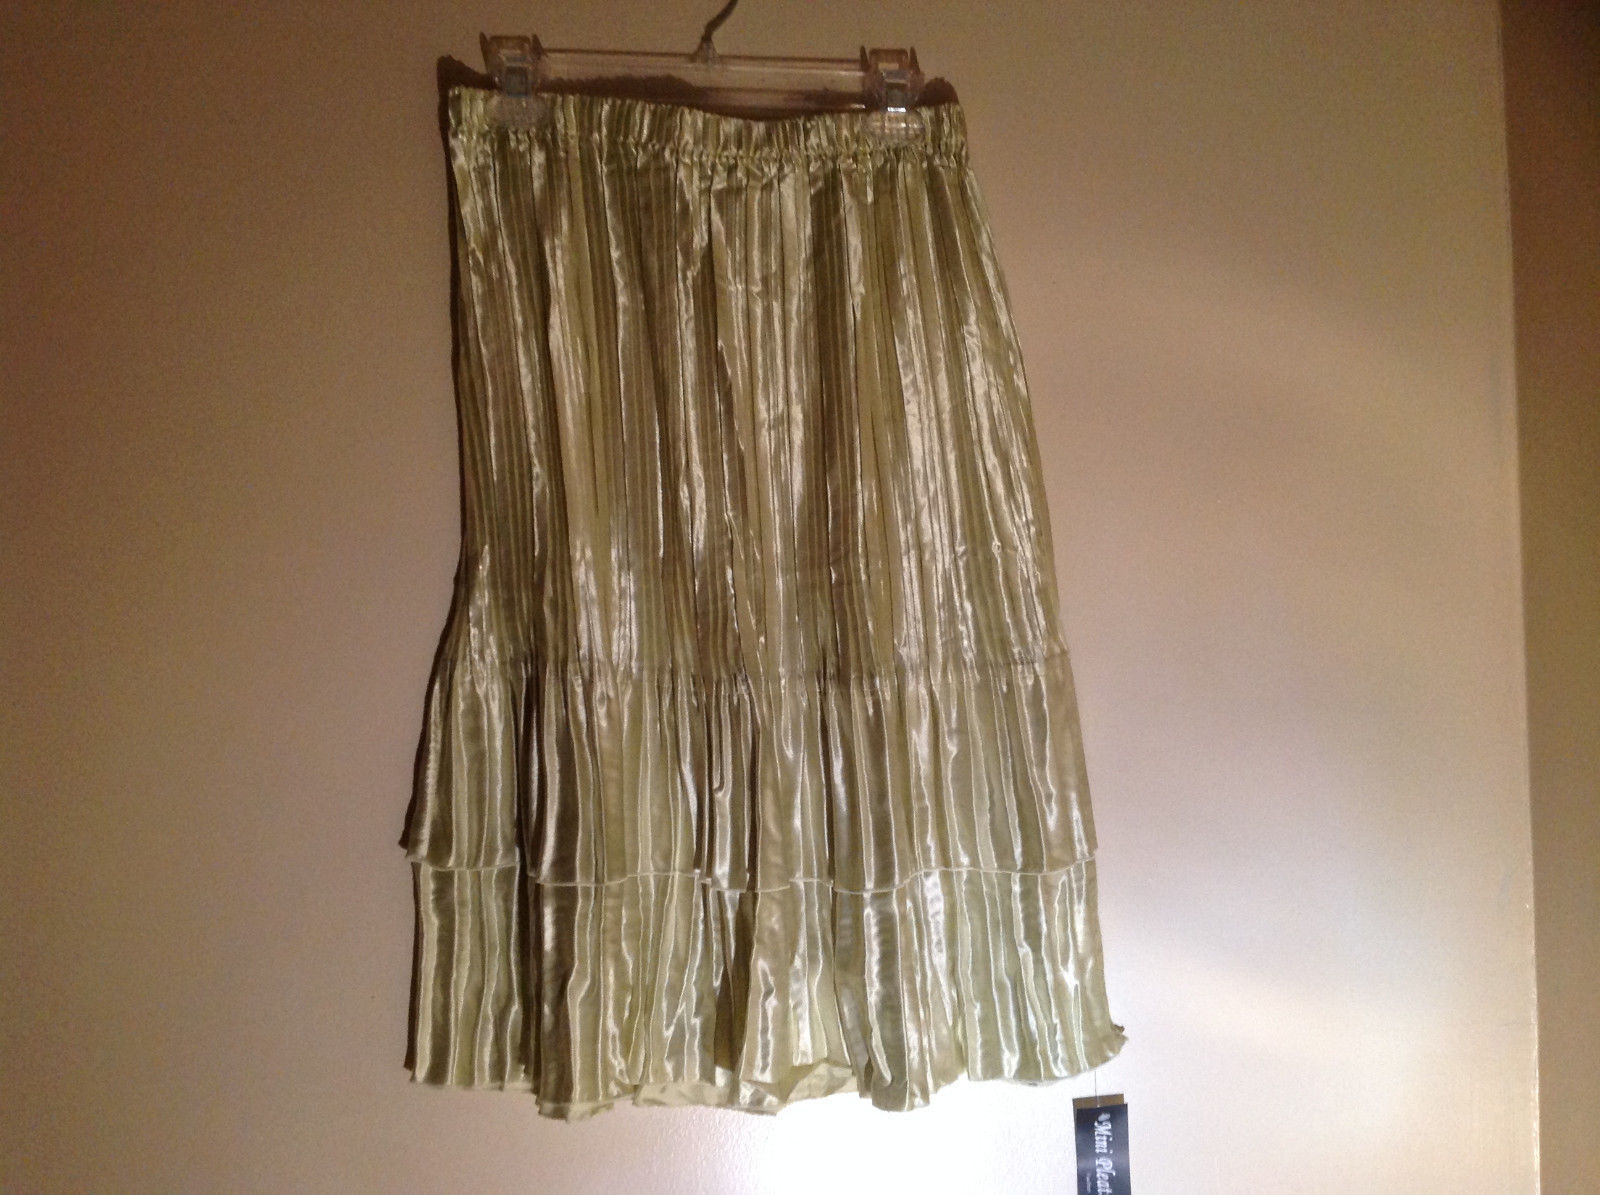 Pale Green Calf Length Pleated Skirt Shiny Material by Magic Scarf Co.